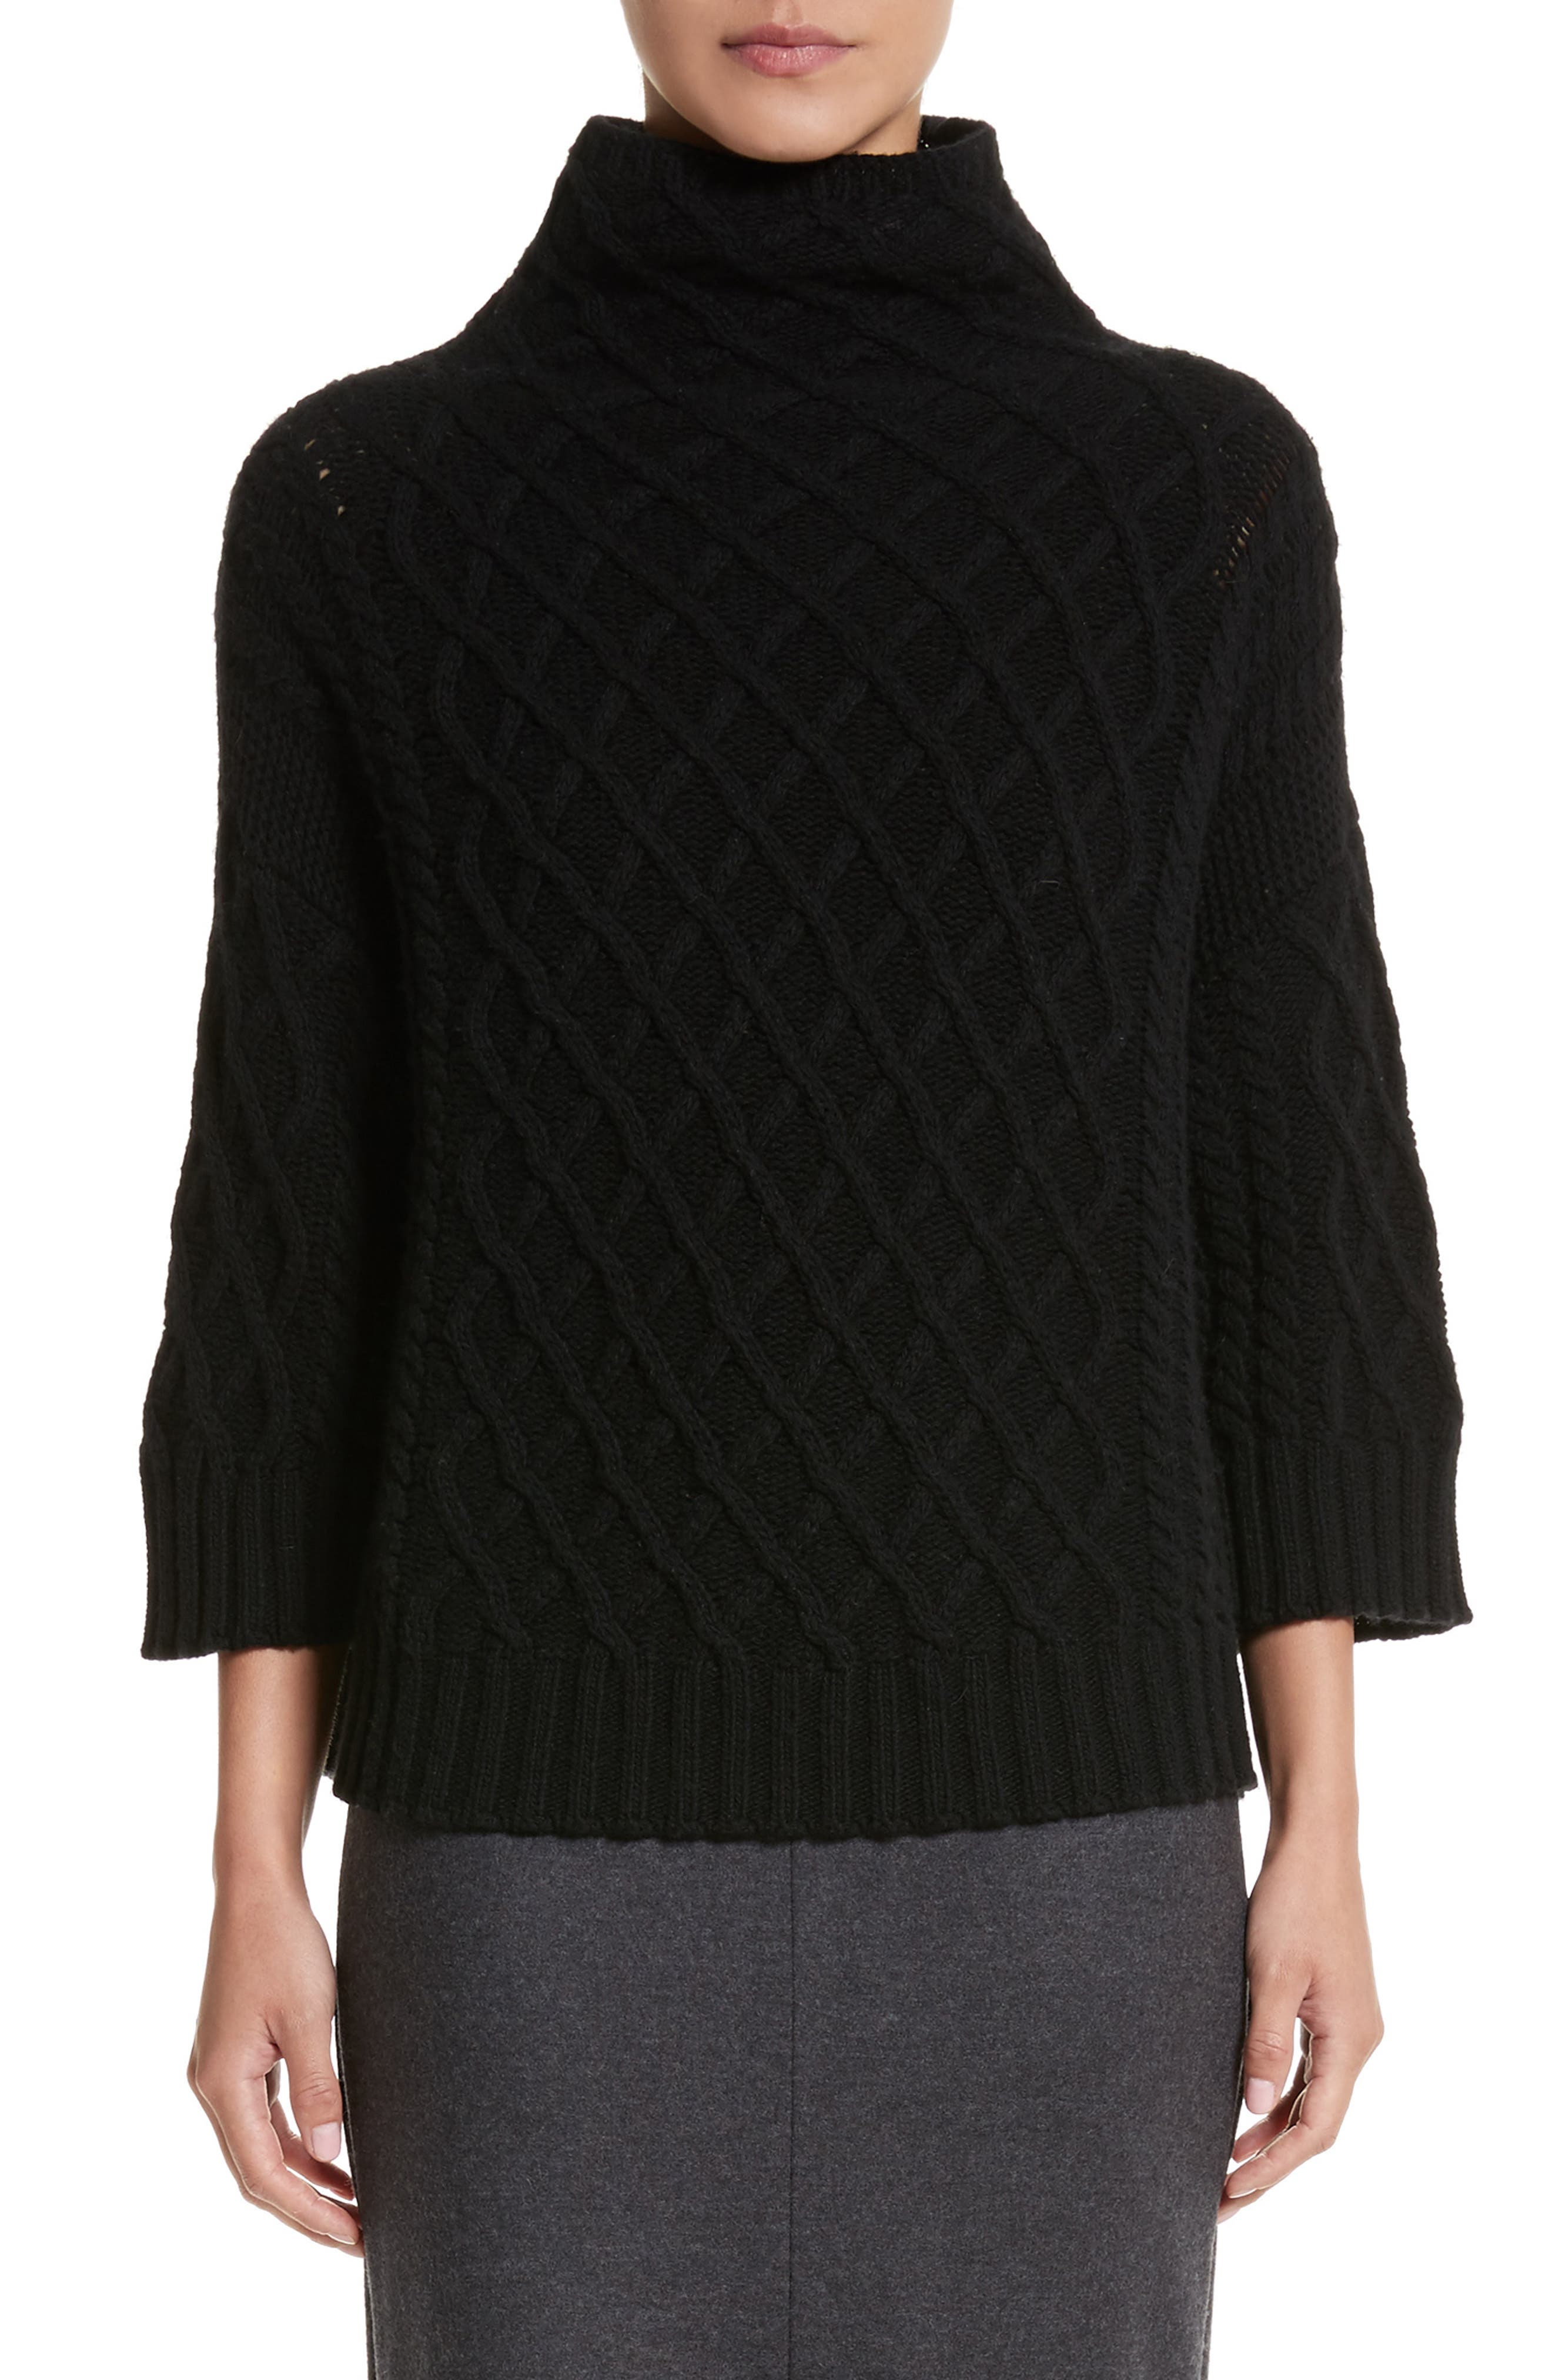 Cantone Wool & Cashmere Funnel Neck Sweater,                         Main,                         color, Black